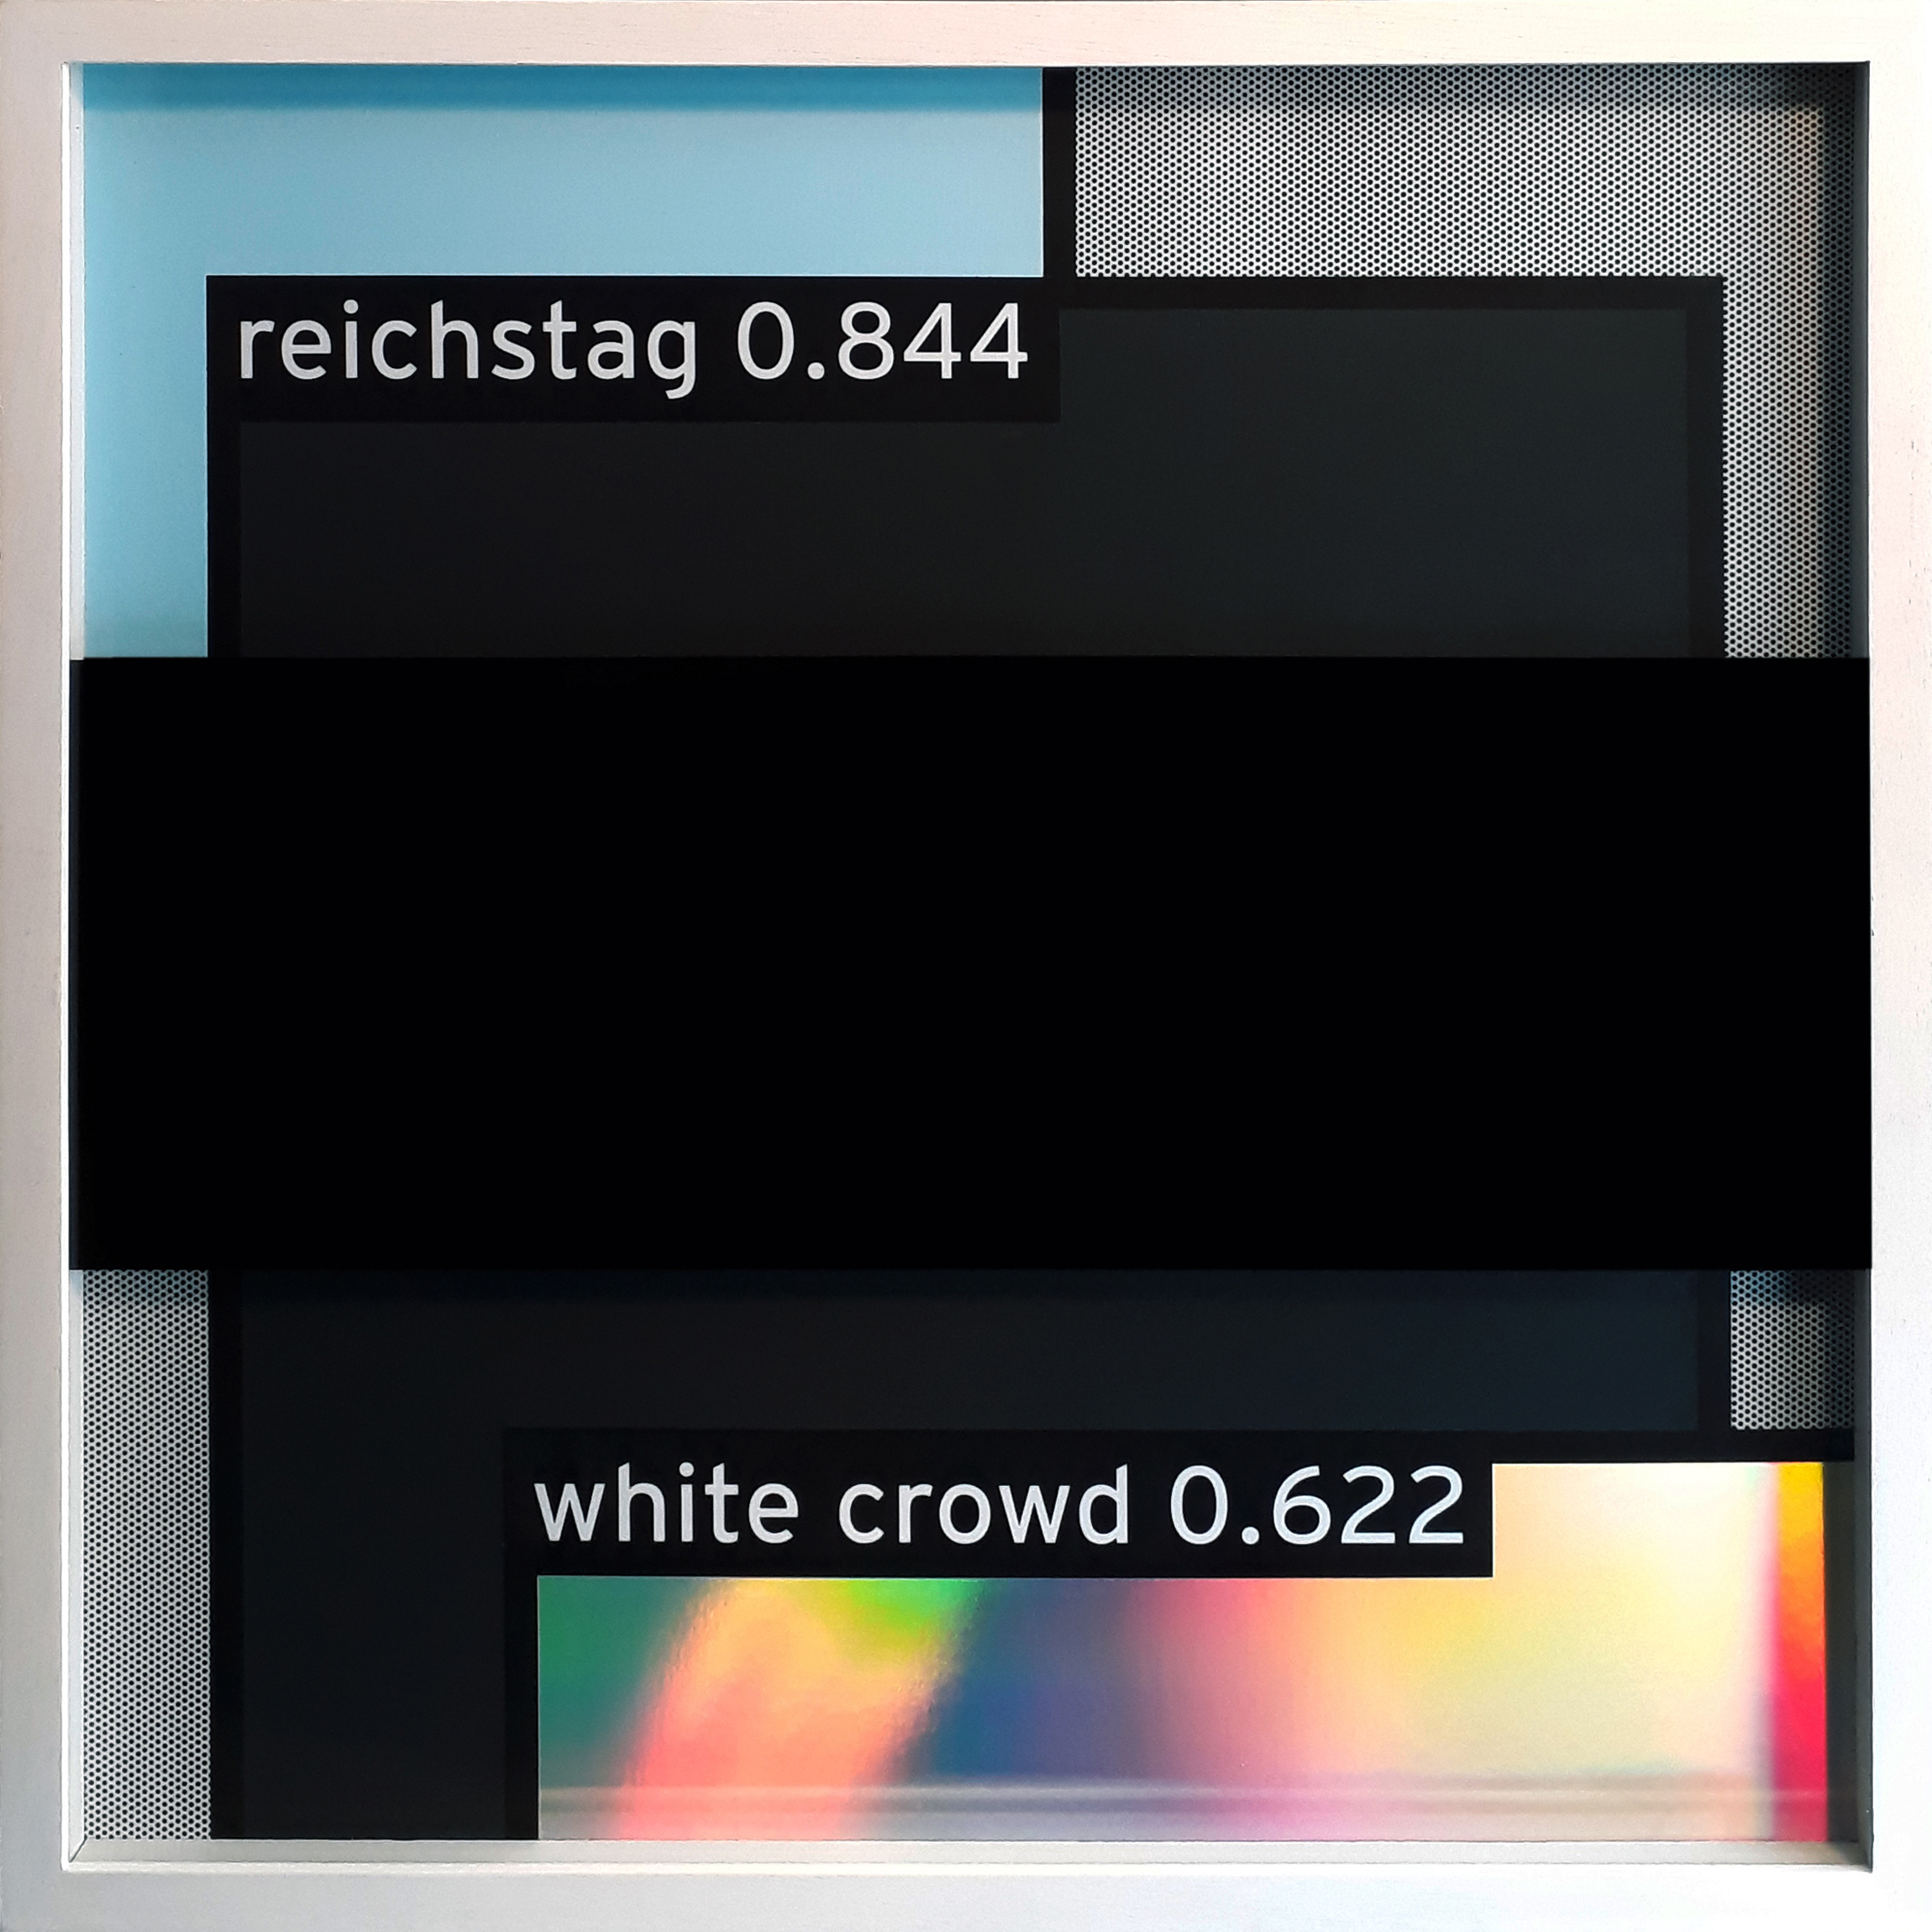 WHITE CROUD 0.622